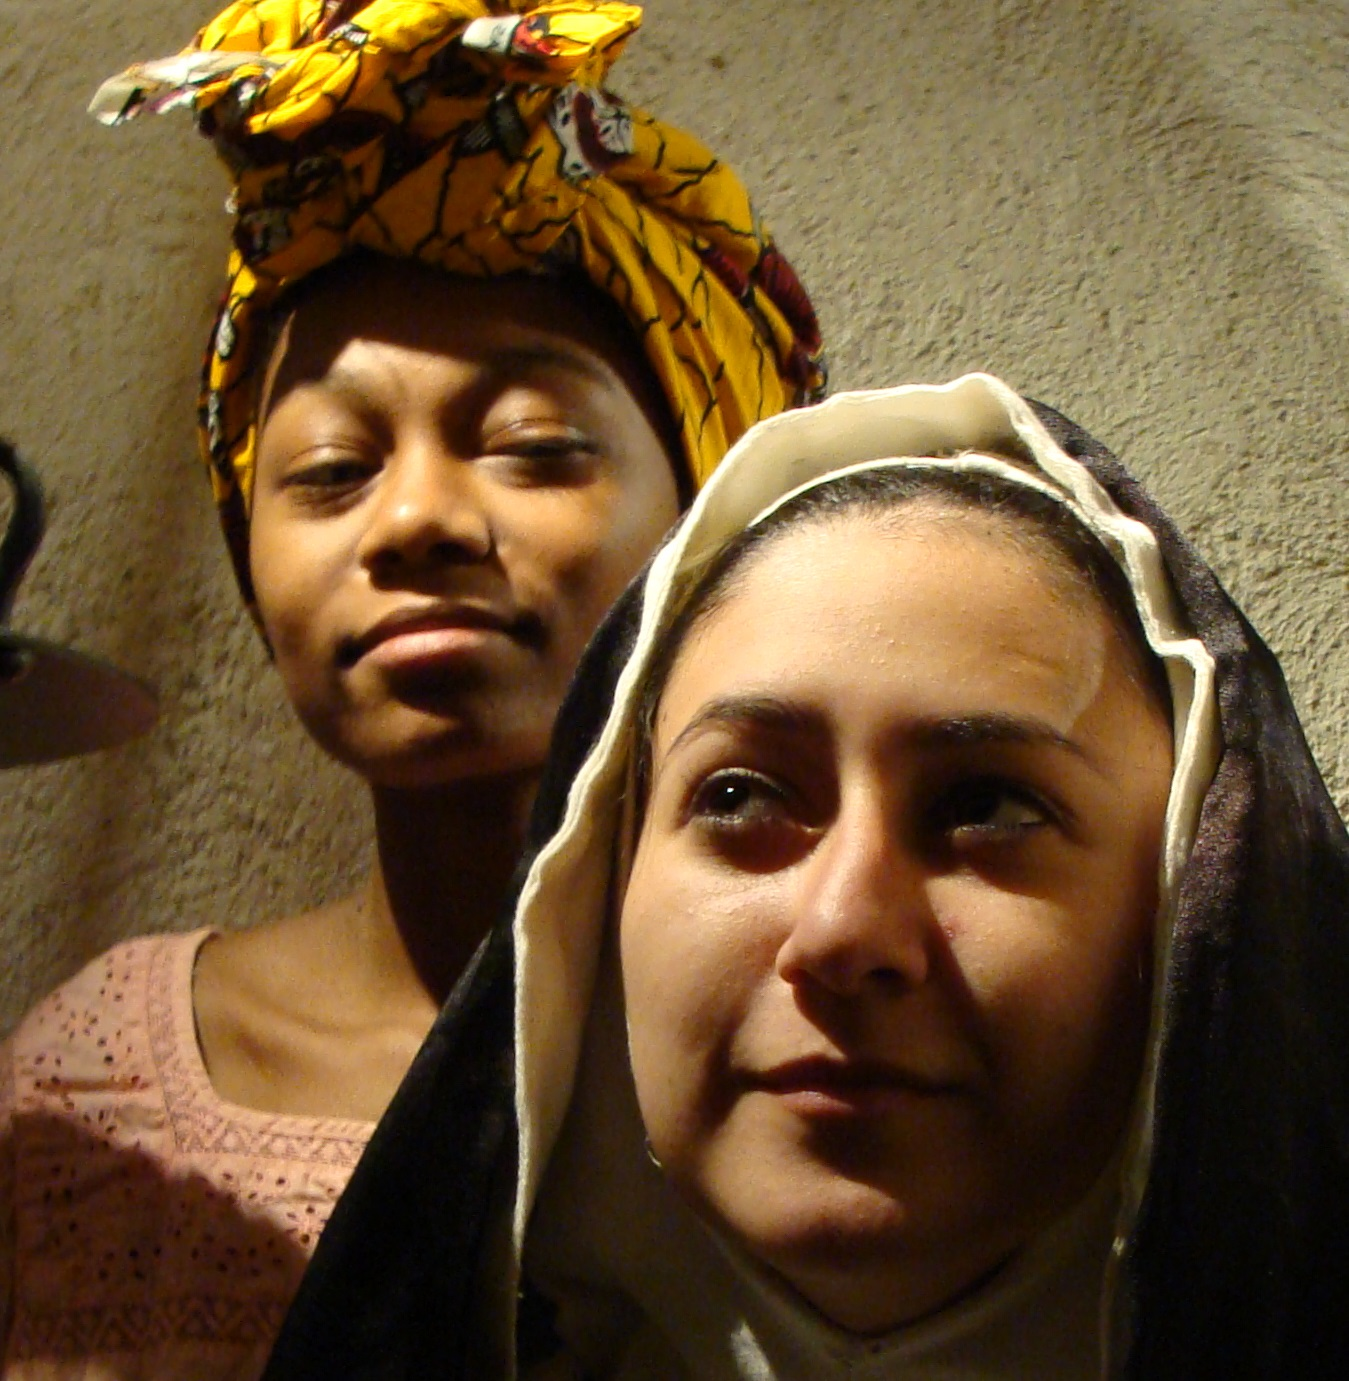 Savannah Williams (Loa) and Alejandra Rivas (Sor Juana).